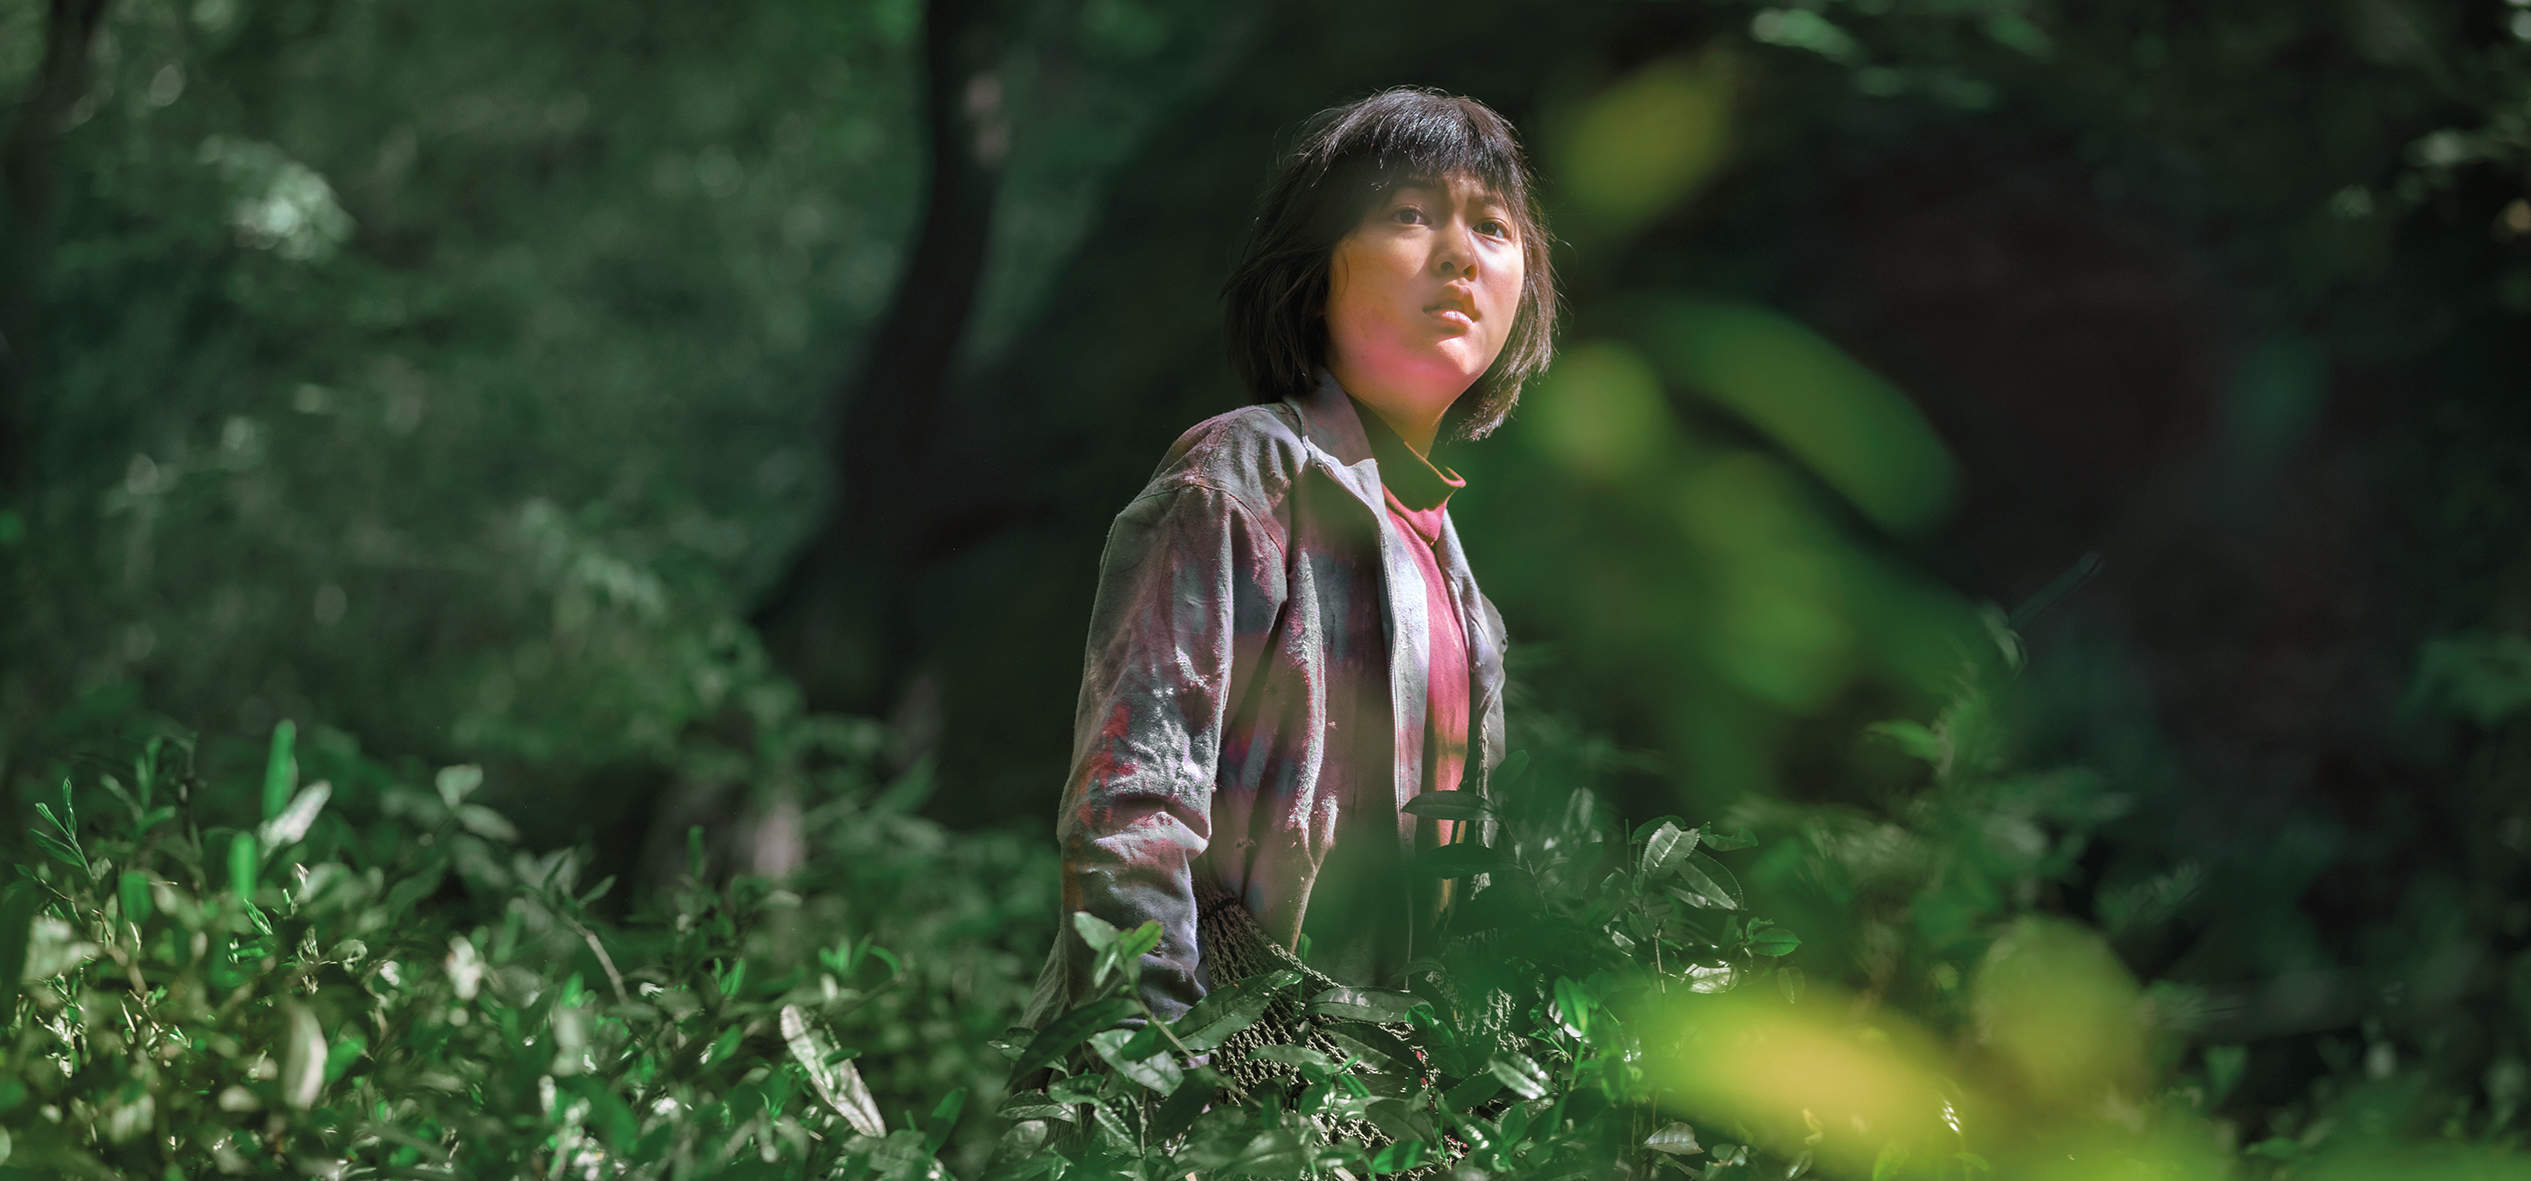 Okja begins as a buddy flick – but ends up in the slaughterhouse